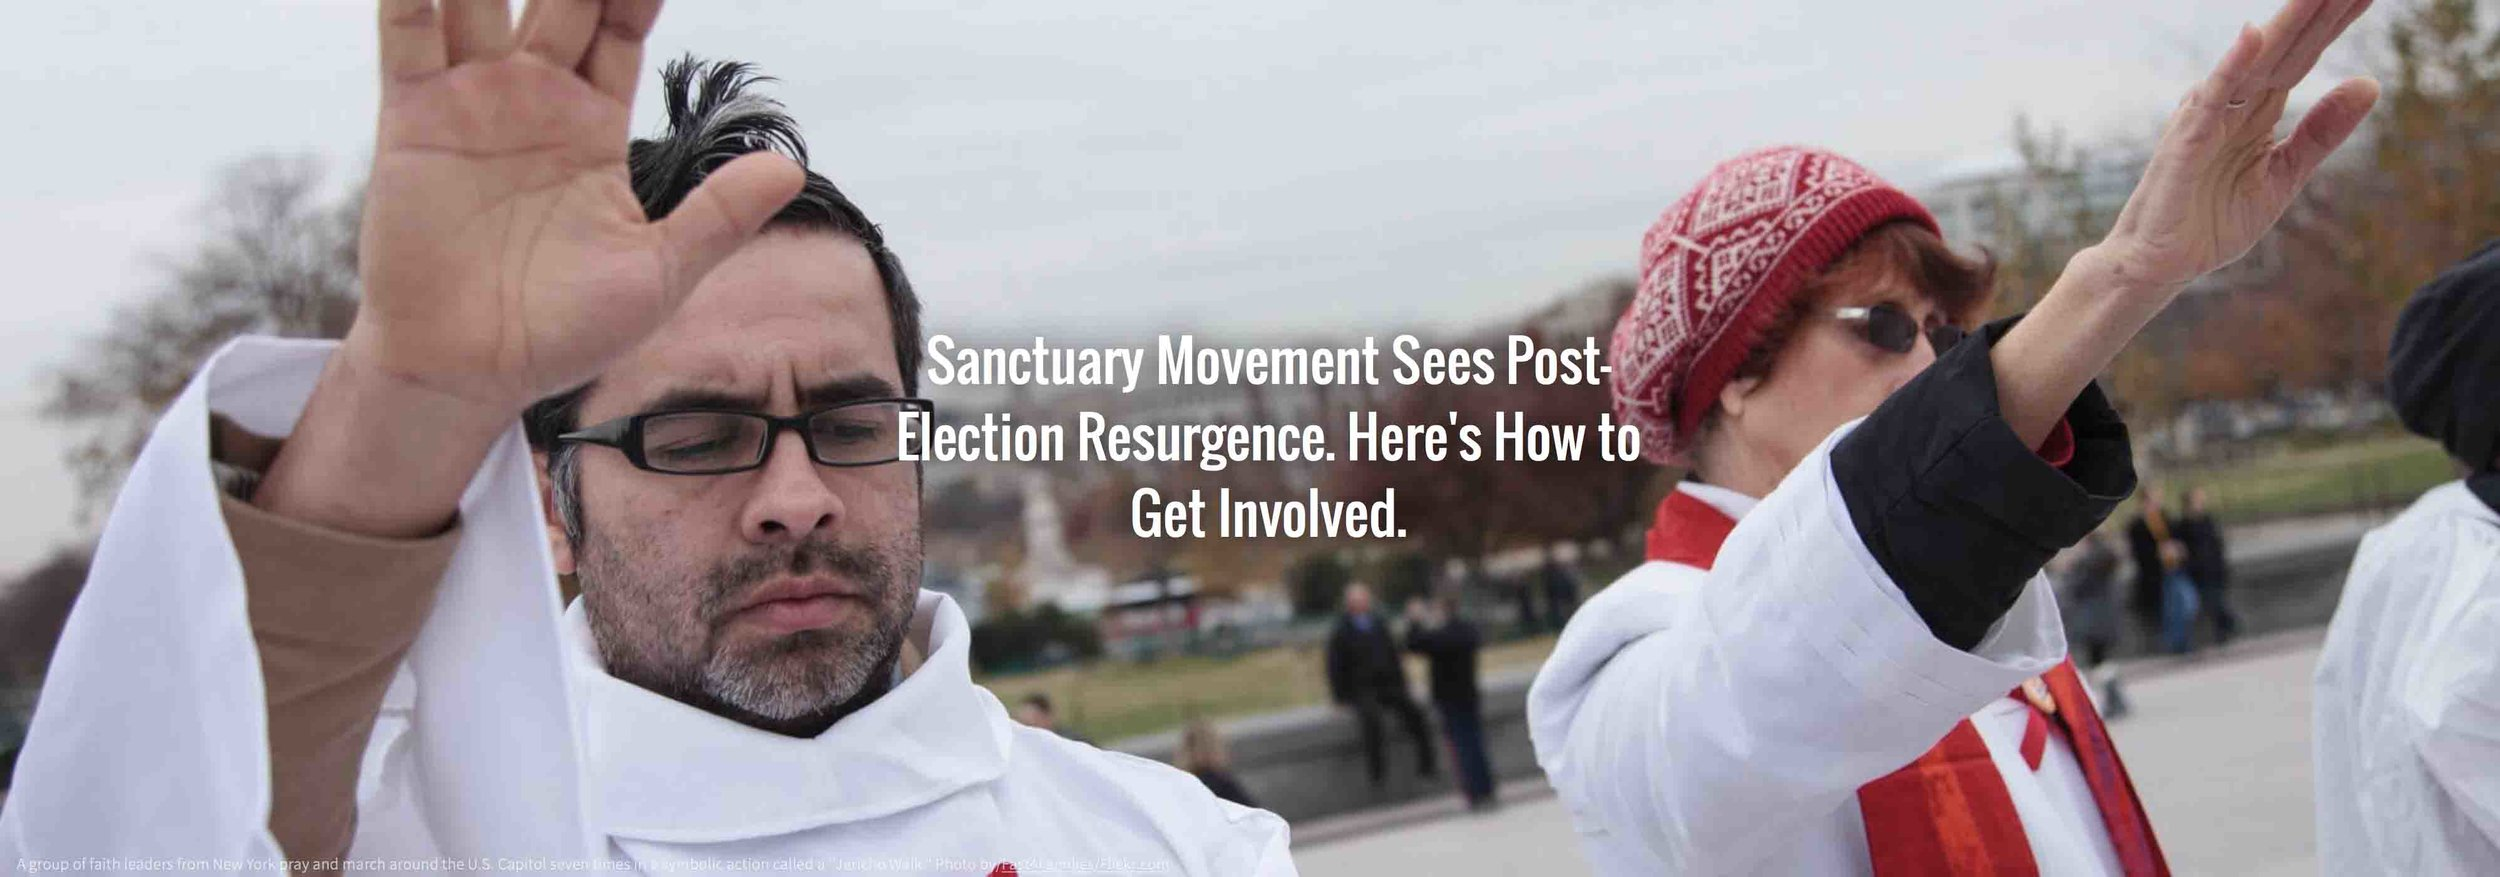 CLICK TO READ AN OVERVIEW OF THE SANCTUARY MOVEMENT BY SENIOR MINISTER REV. DONNA SCHAPER